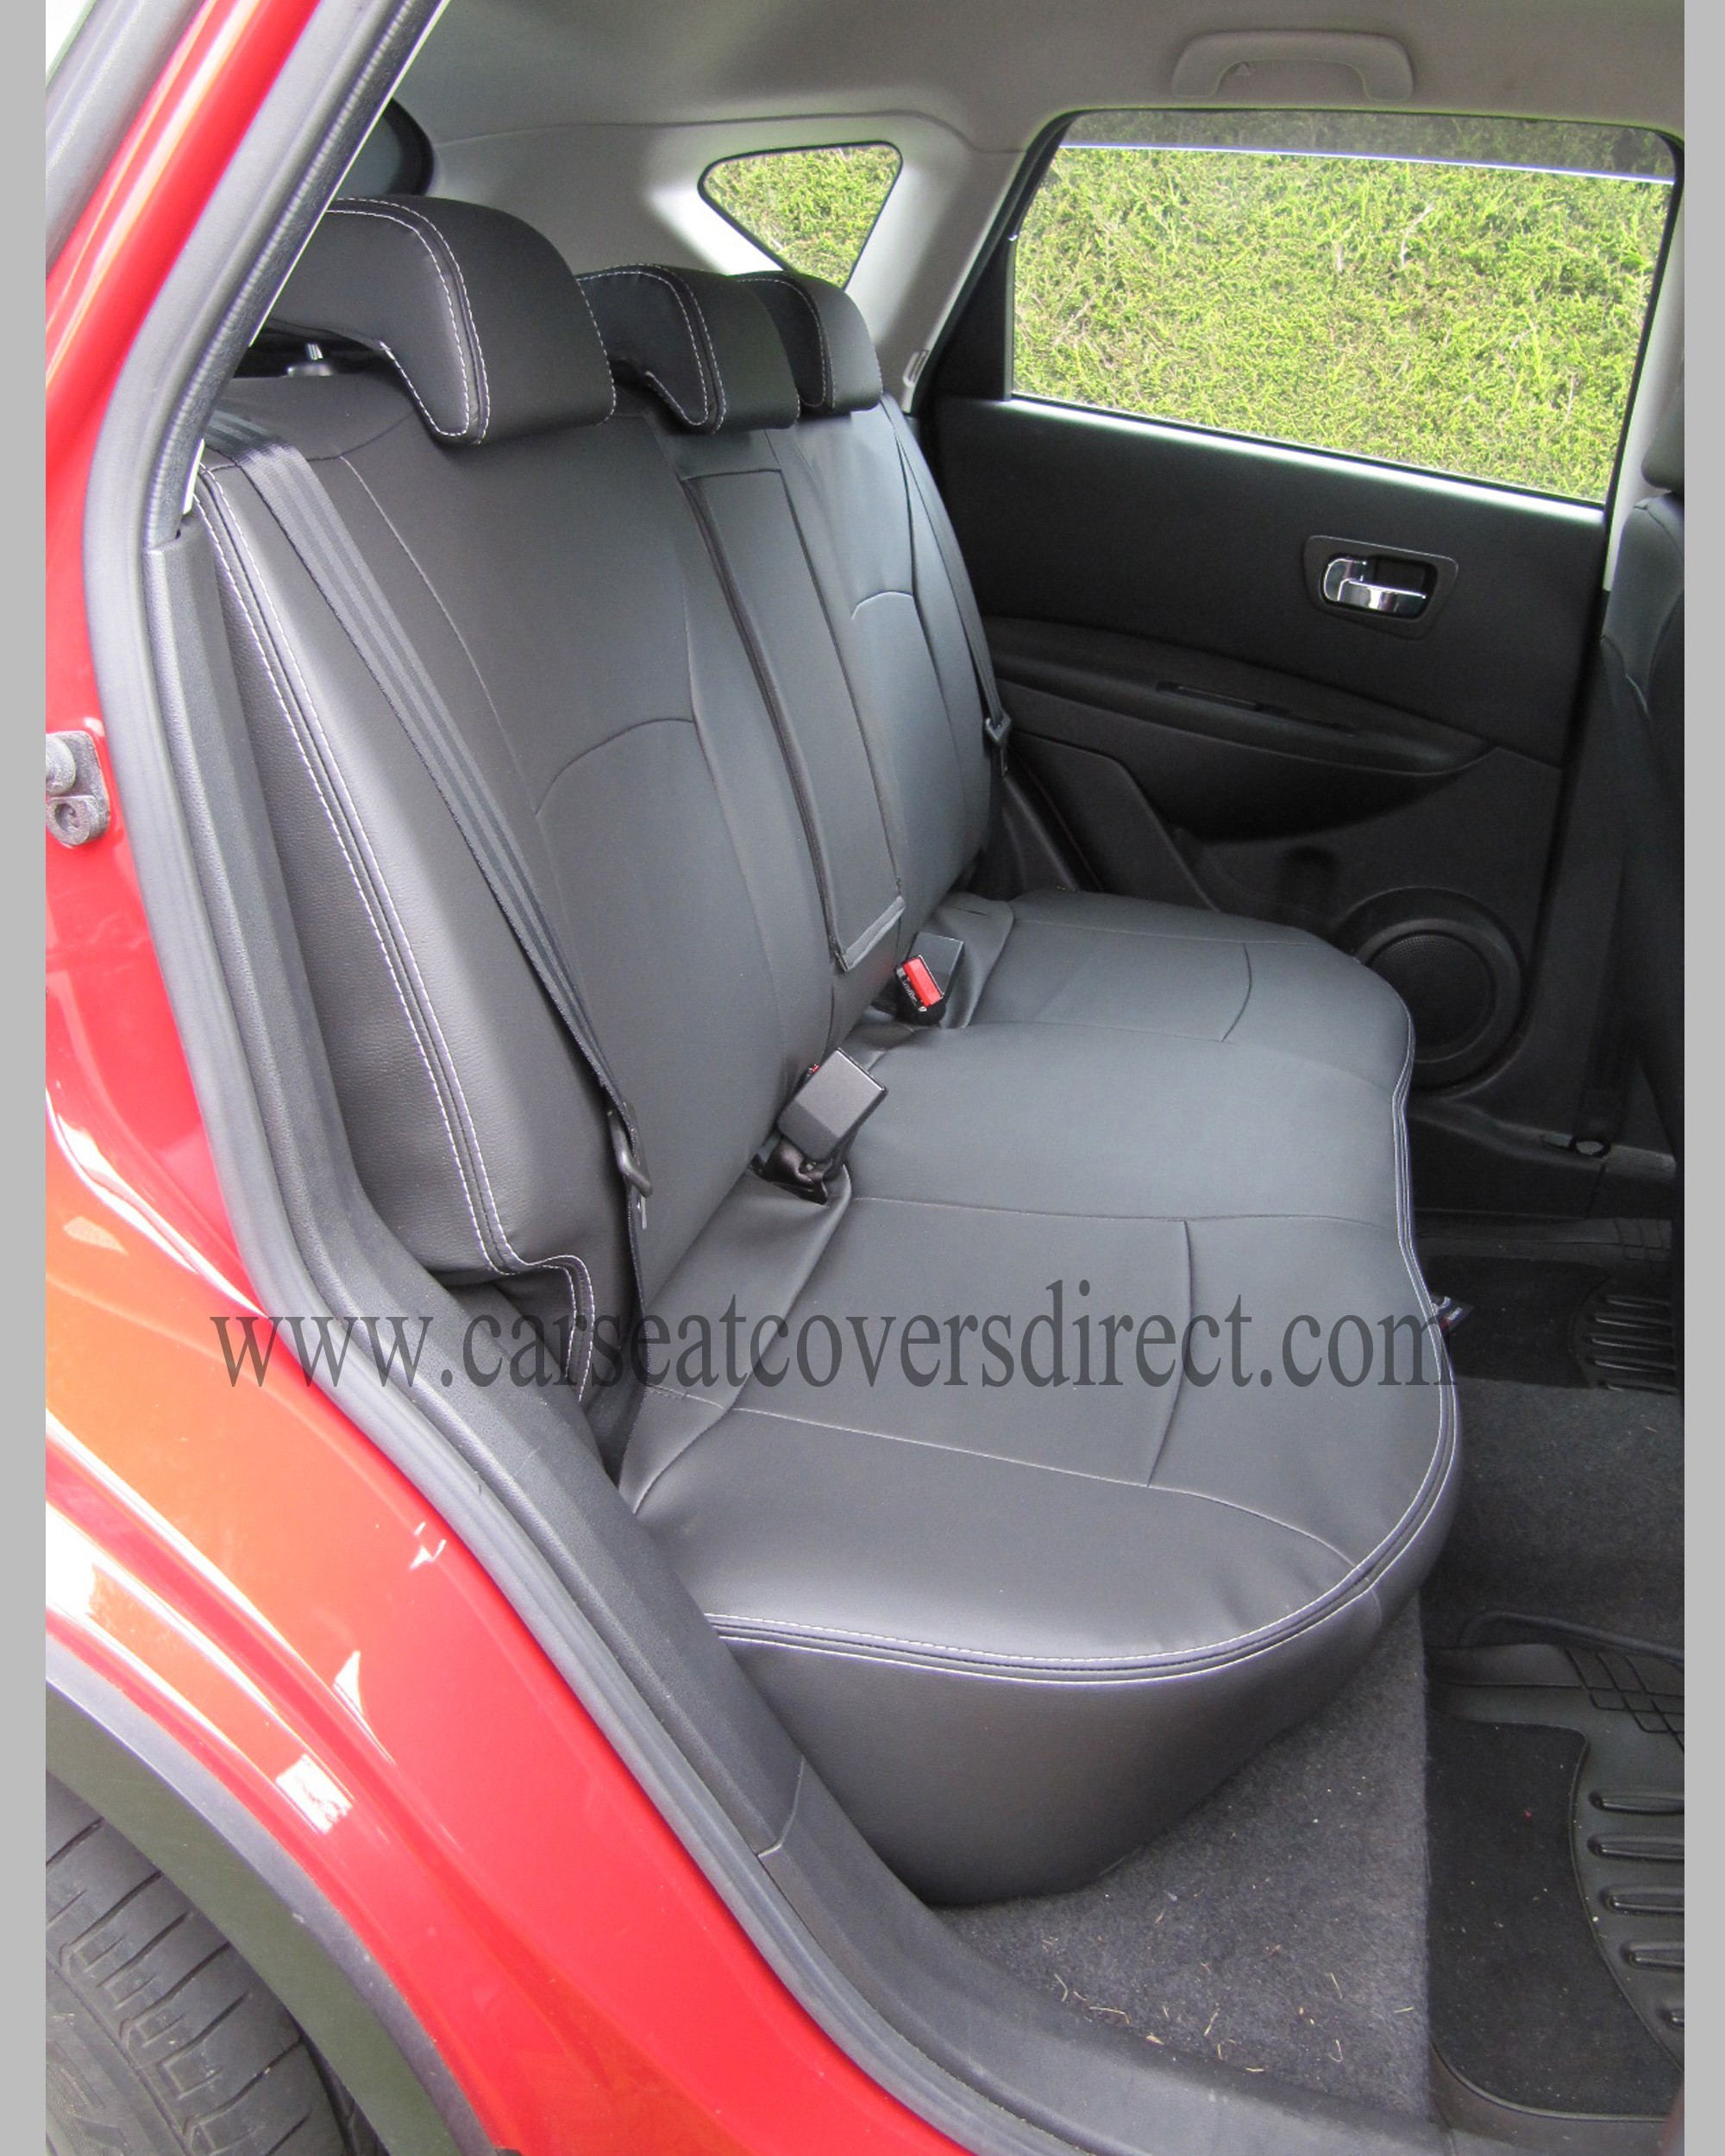 nissan qashqai seat covers car seat covers direct tailored to your choice. Black Bedroom Furniture Sets. Home Design Ideas